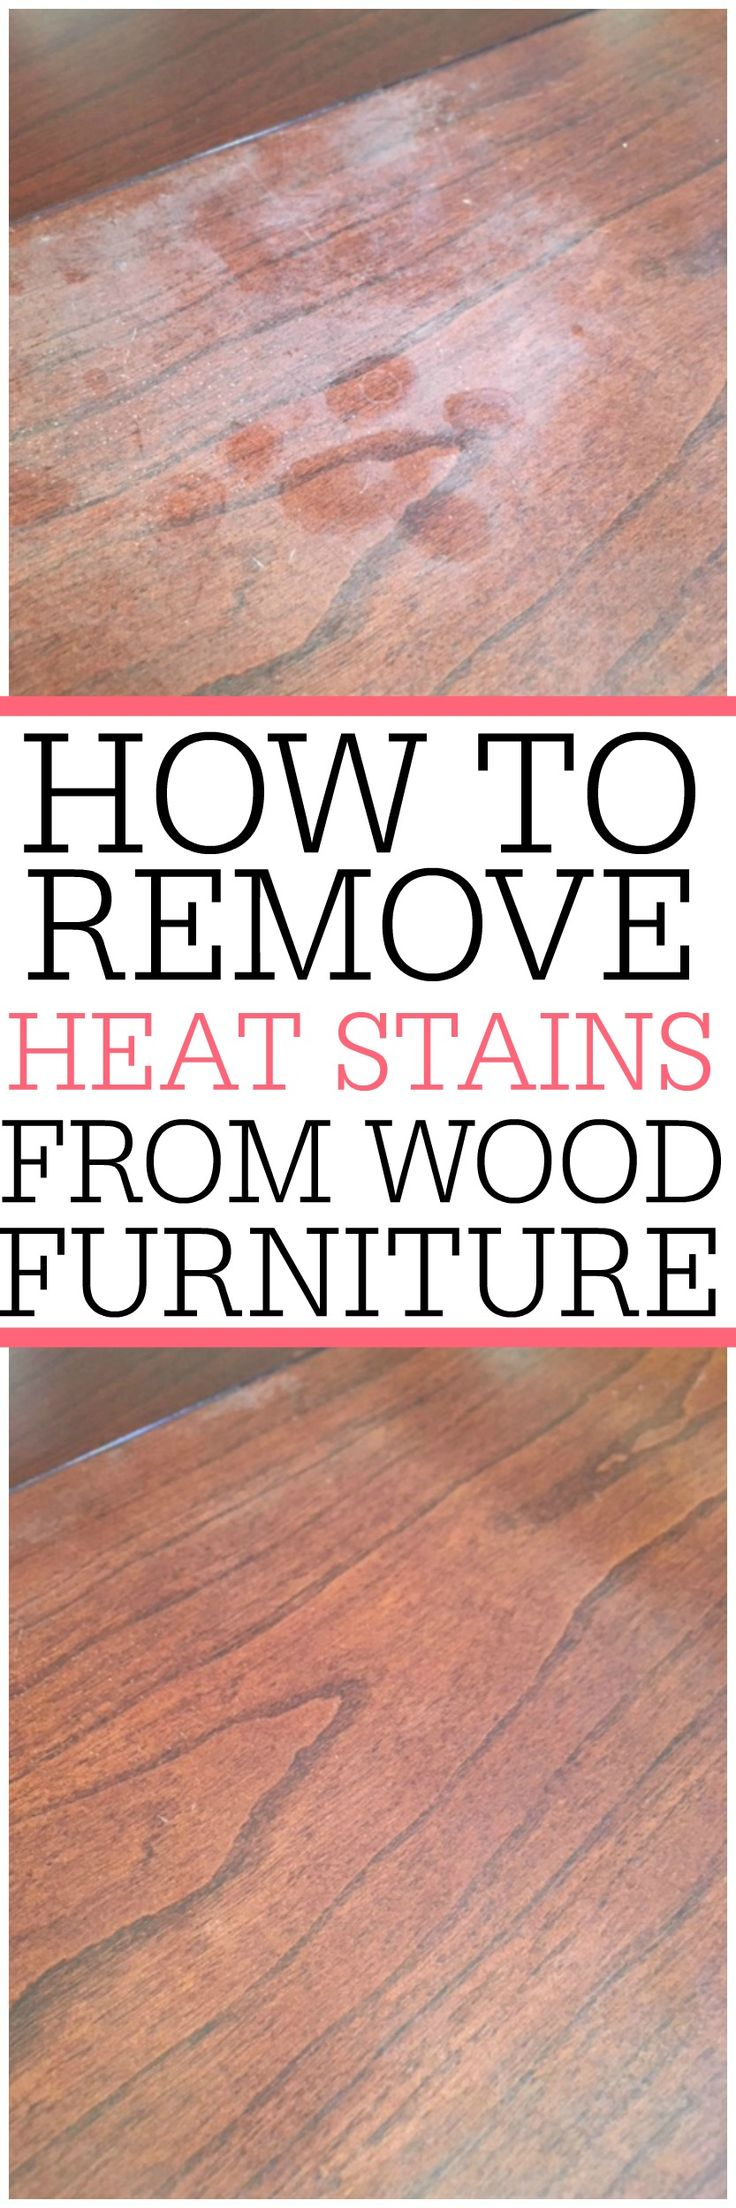 Heat stains on wood furniture? Check out an easy way on how to remove heat